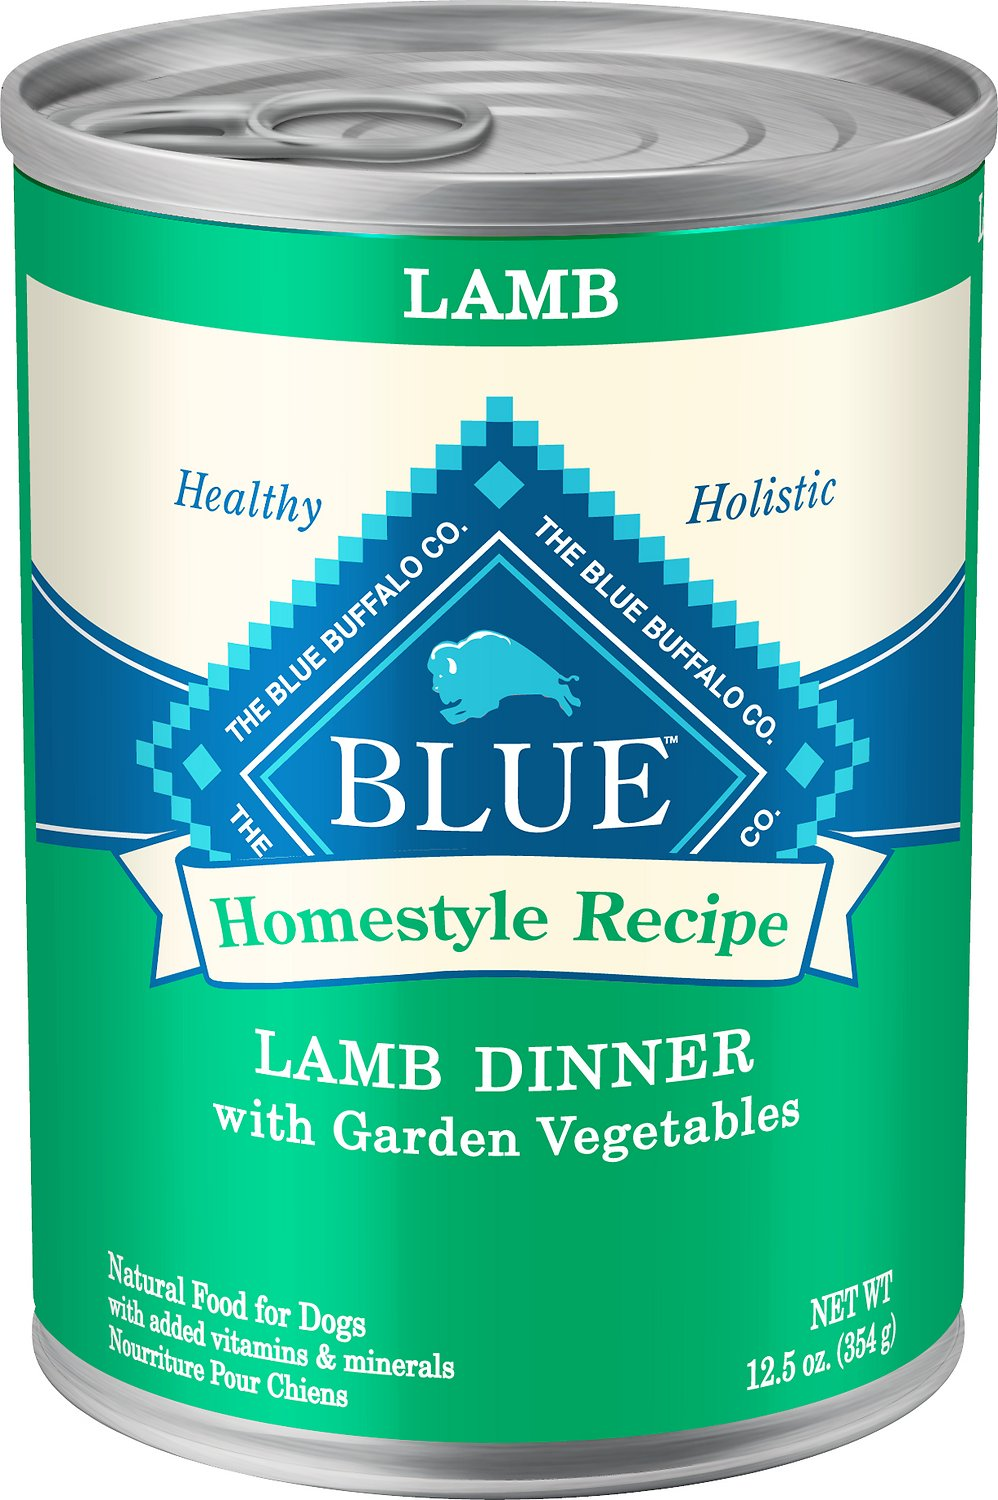 Flossy Blue Buffalo Dinner Can Blue Buffalo Blue Buffalo Senior Dog Food Petco Blue Buffalo Senior Dog Food Target bark post Blue Buffalo Senior Dog Food